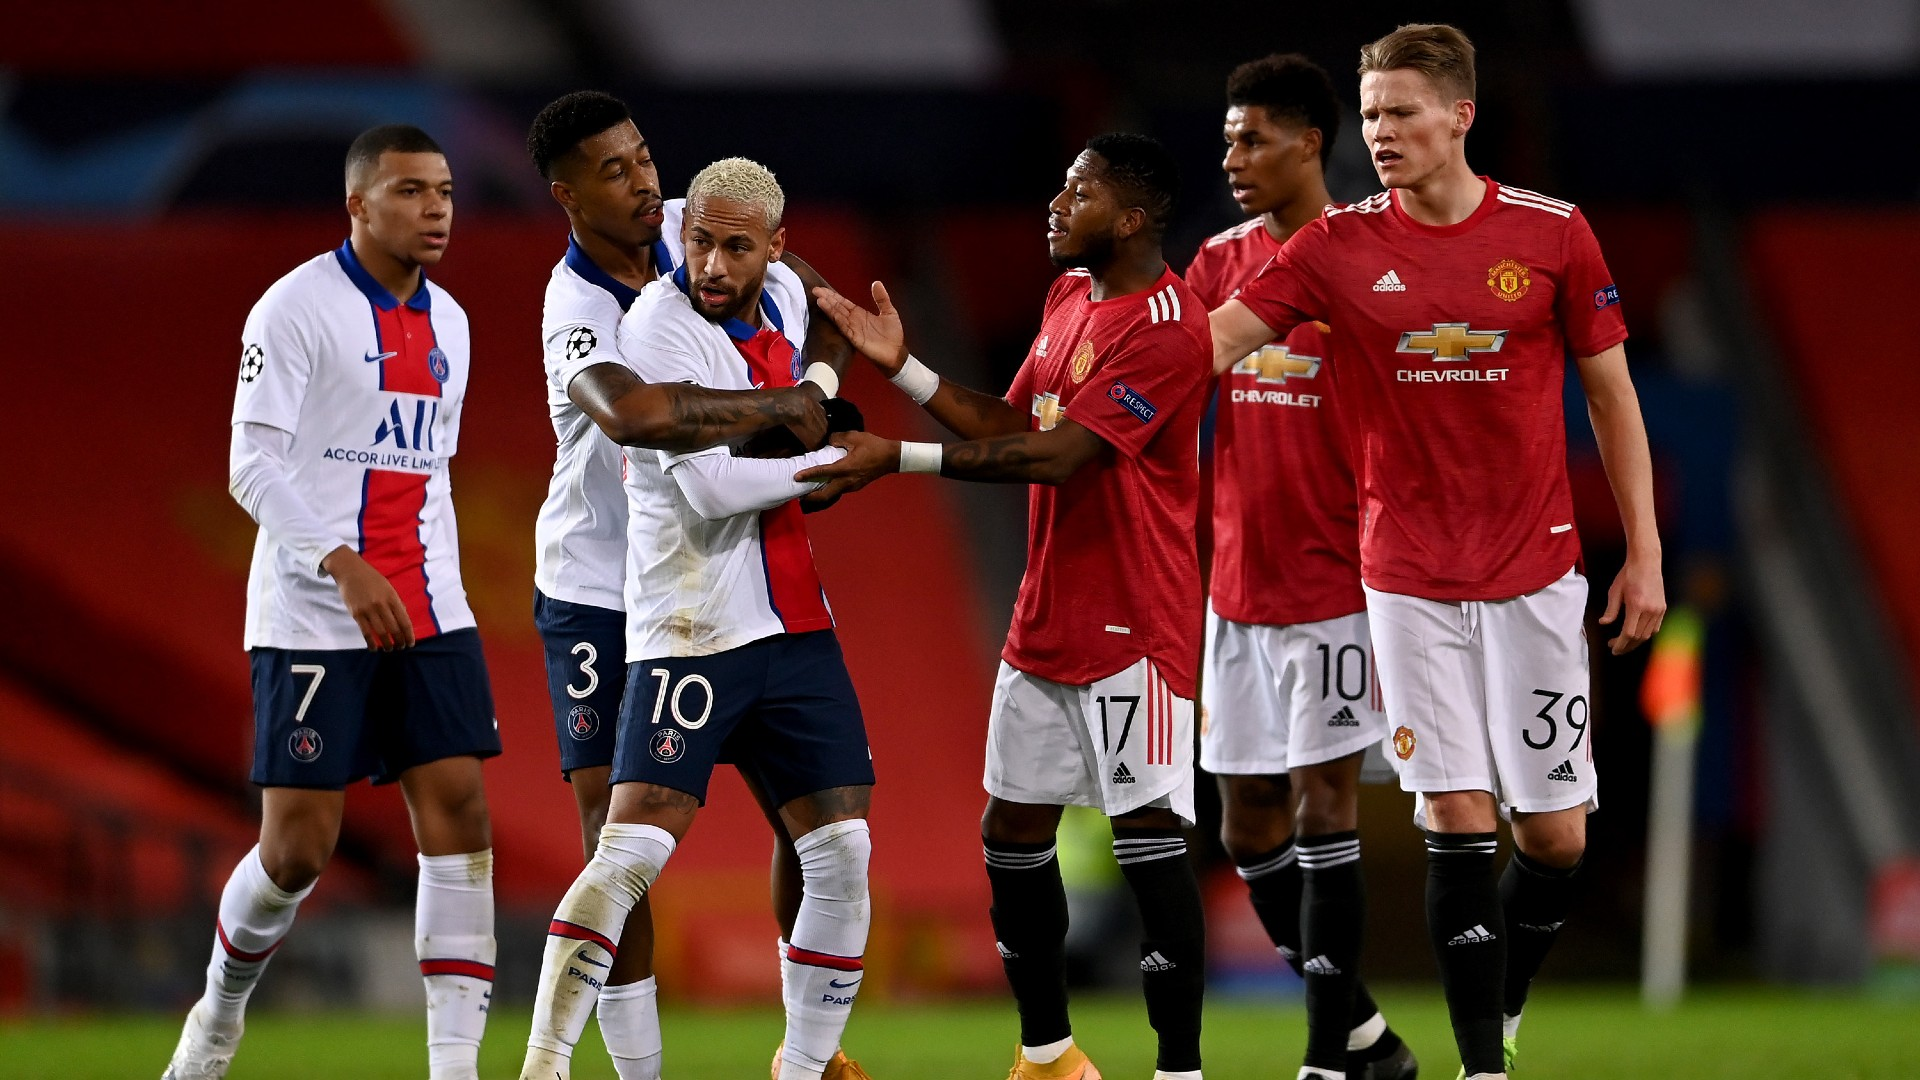 Fred Avoids Red Card For Headbutt In Champions League Clash Between Manchester United And Psg Goal Com